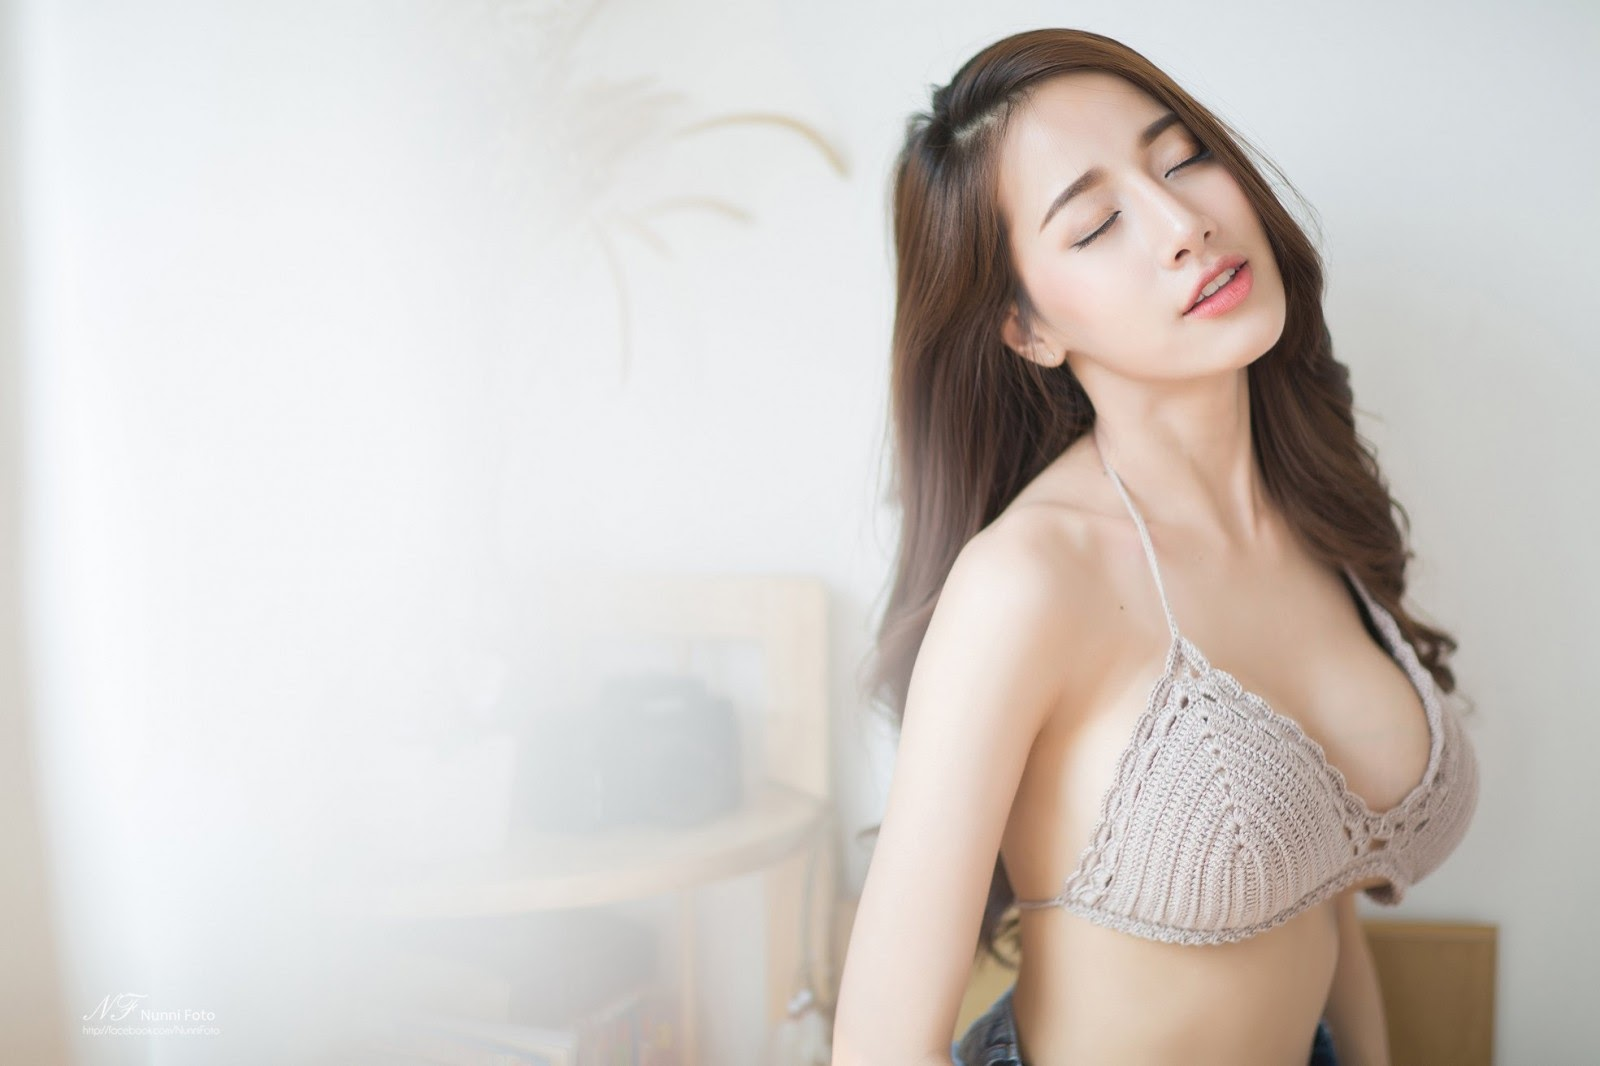 Japanese_girl in bra